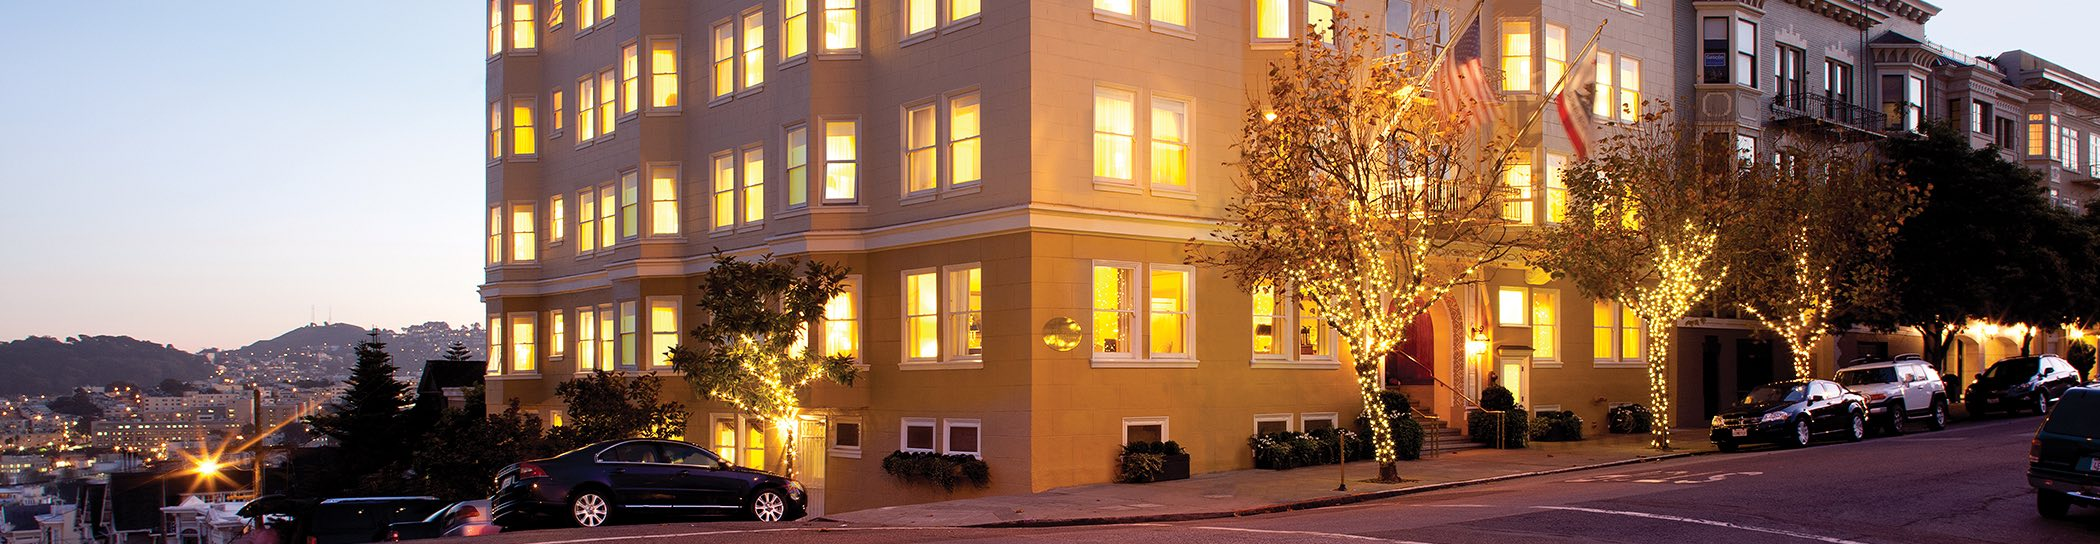 Hotel Drisco Our Hotel Boutique Hotels San Francisco